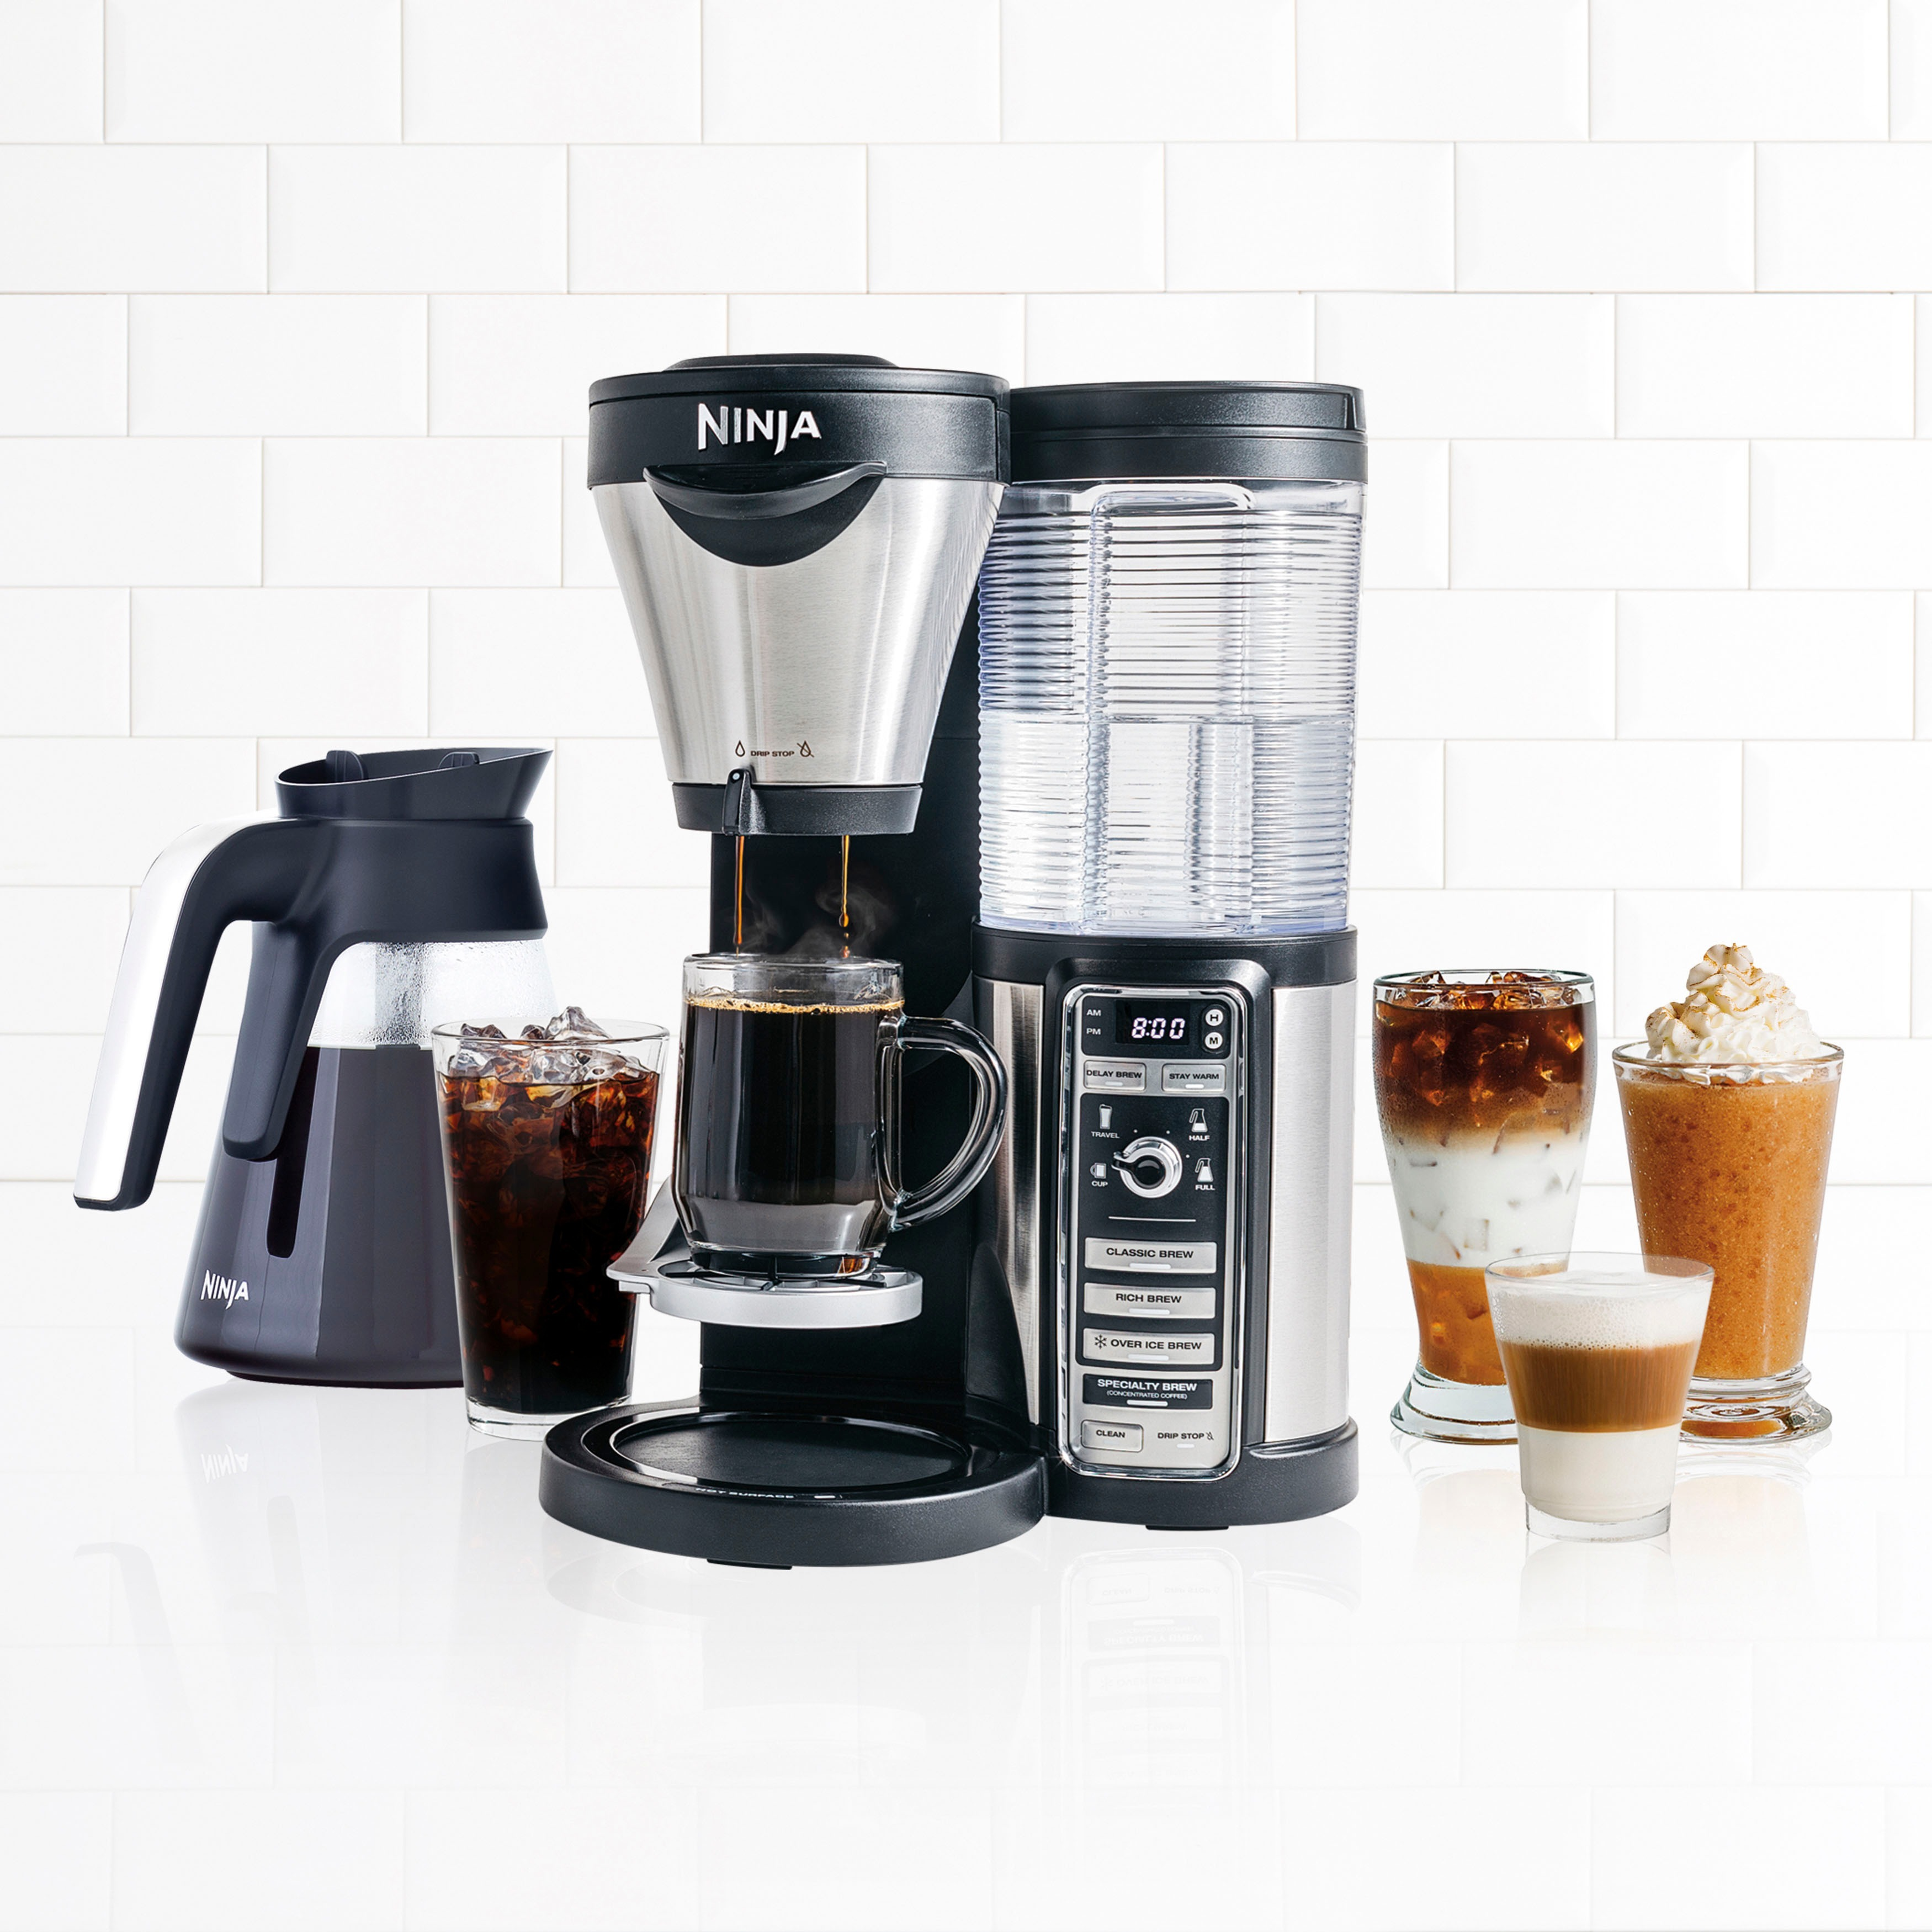 Buy Coffee Makers Online At Overstockcom - Our Best Kitchen